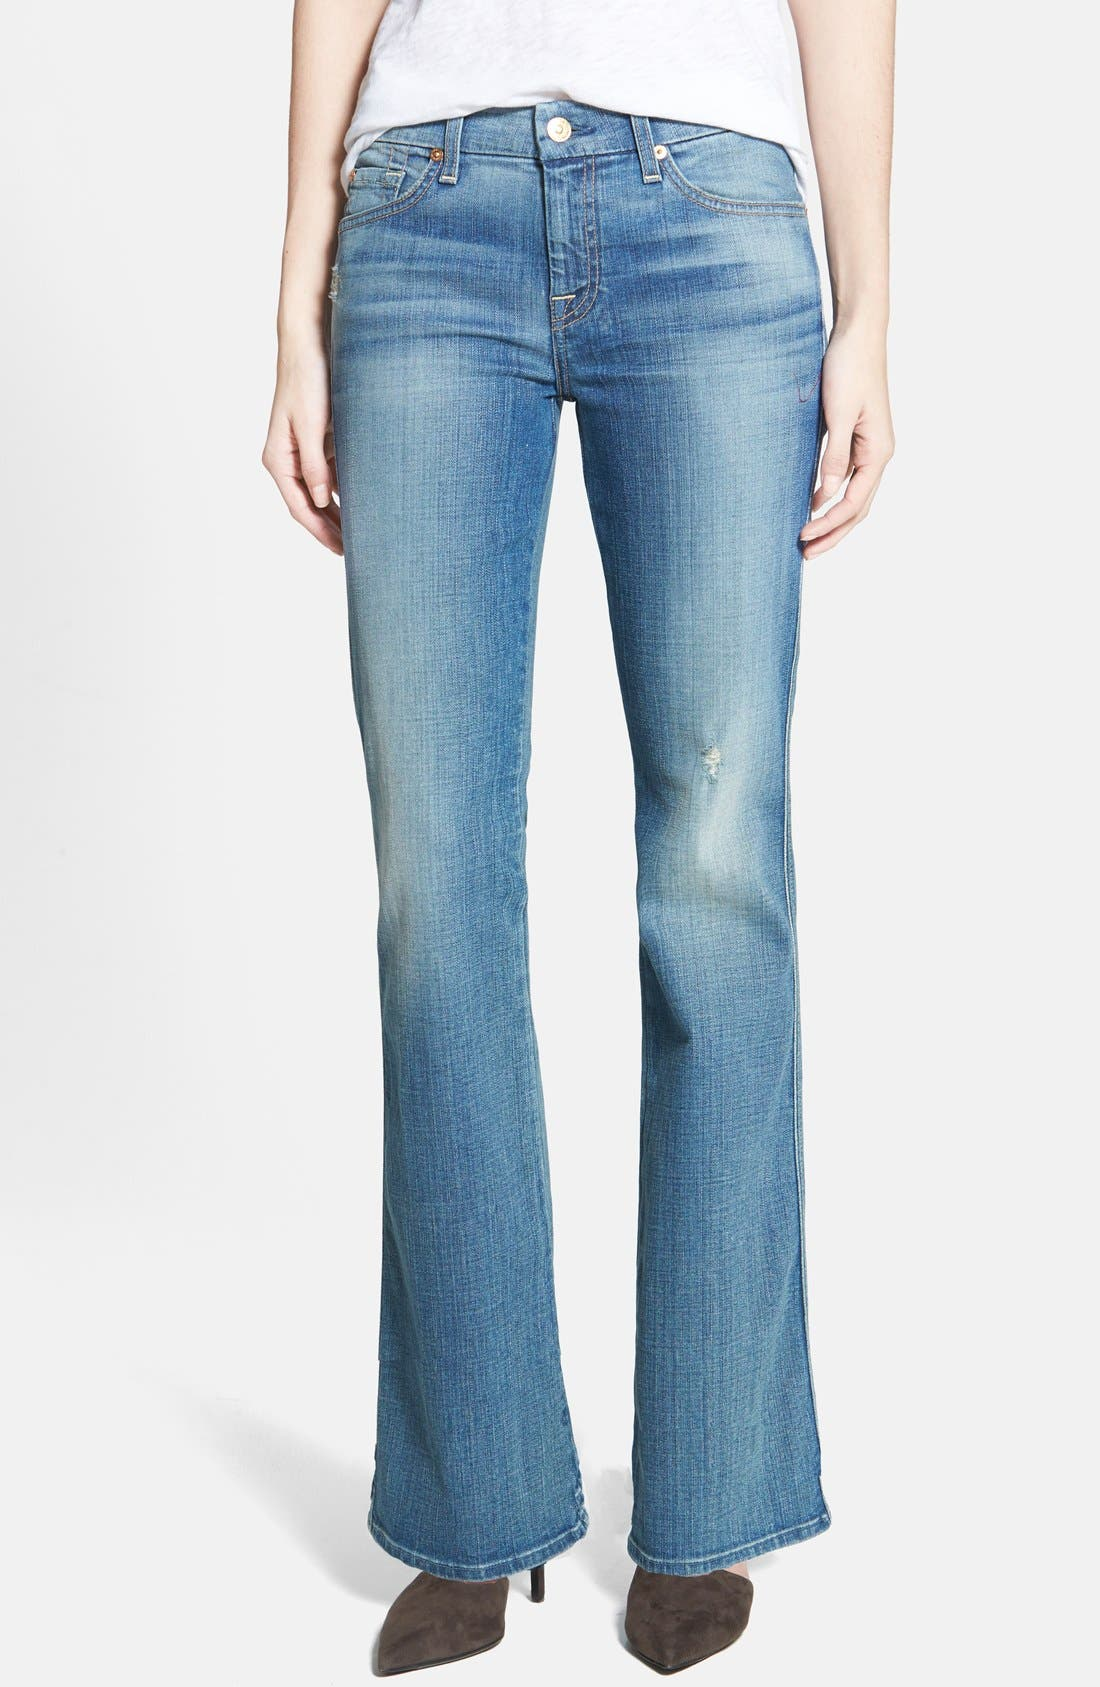 Alternate Image 1 Selected - 7 For All Mankind® 'A Pocket' Bootcut Jeans (Dusty Vintage Blue)